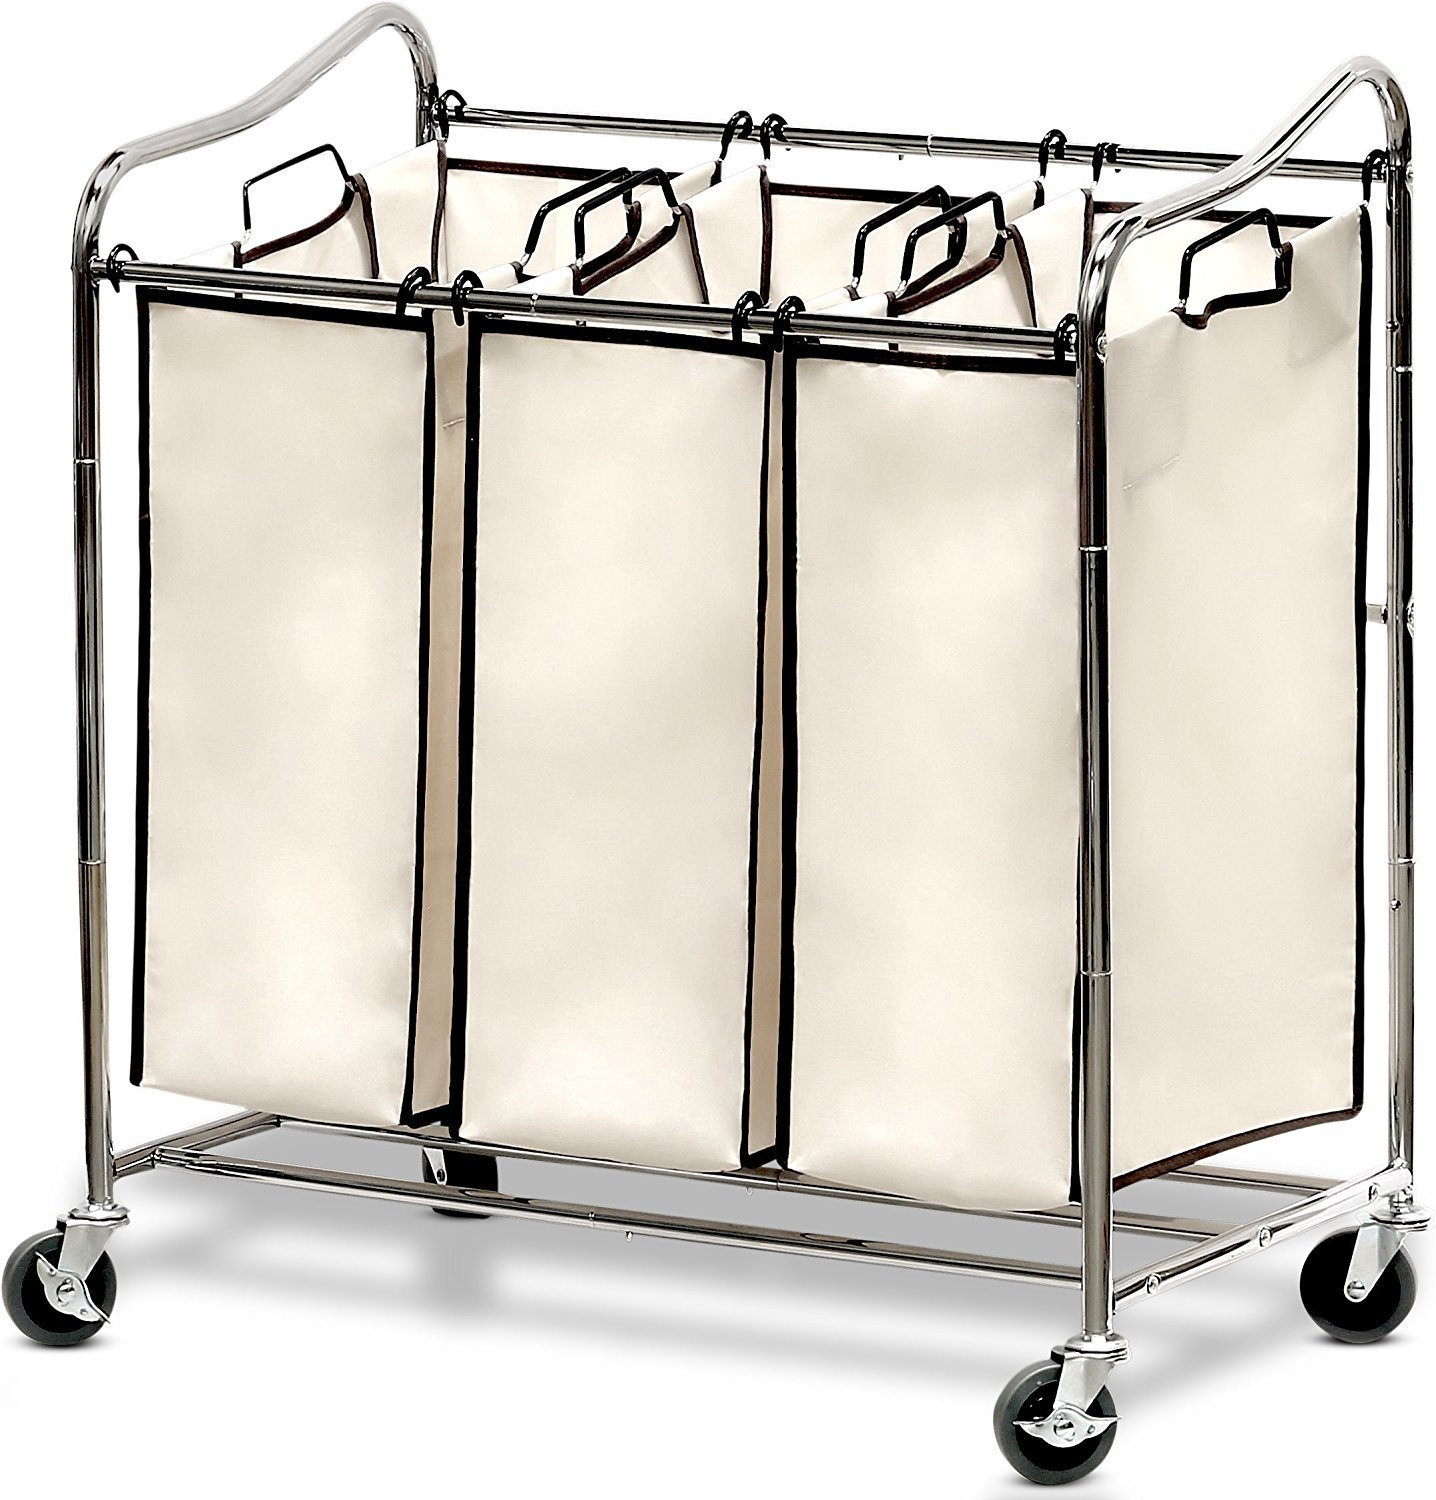 Heavy-Duty 3-Bag Laundry Sorter Cart, Chrome